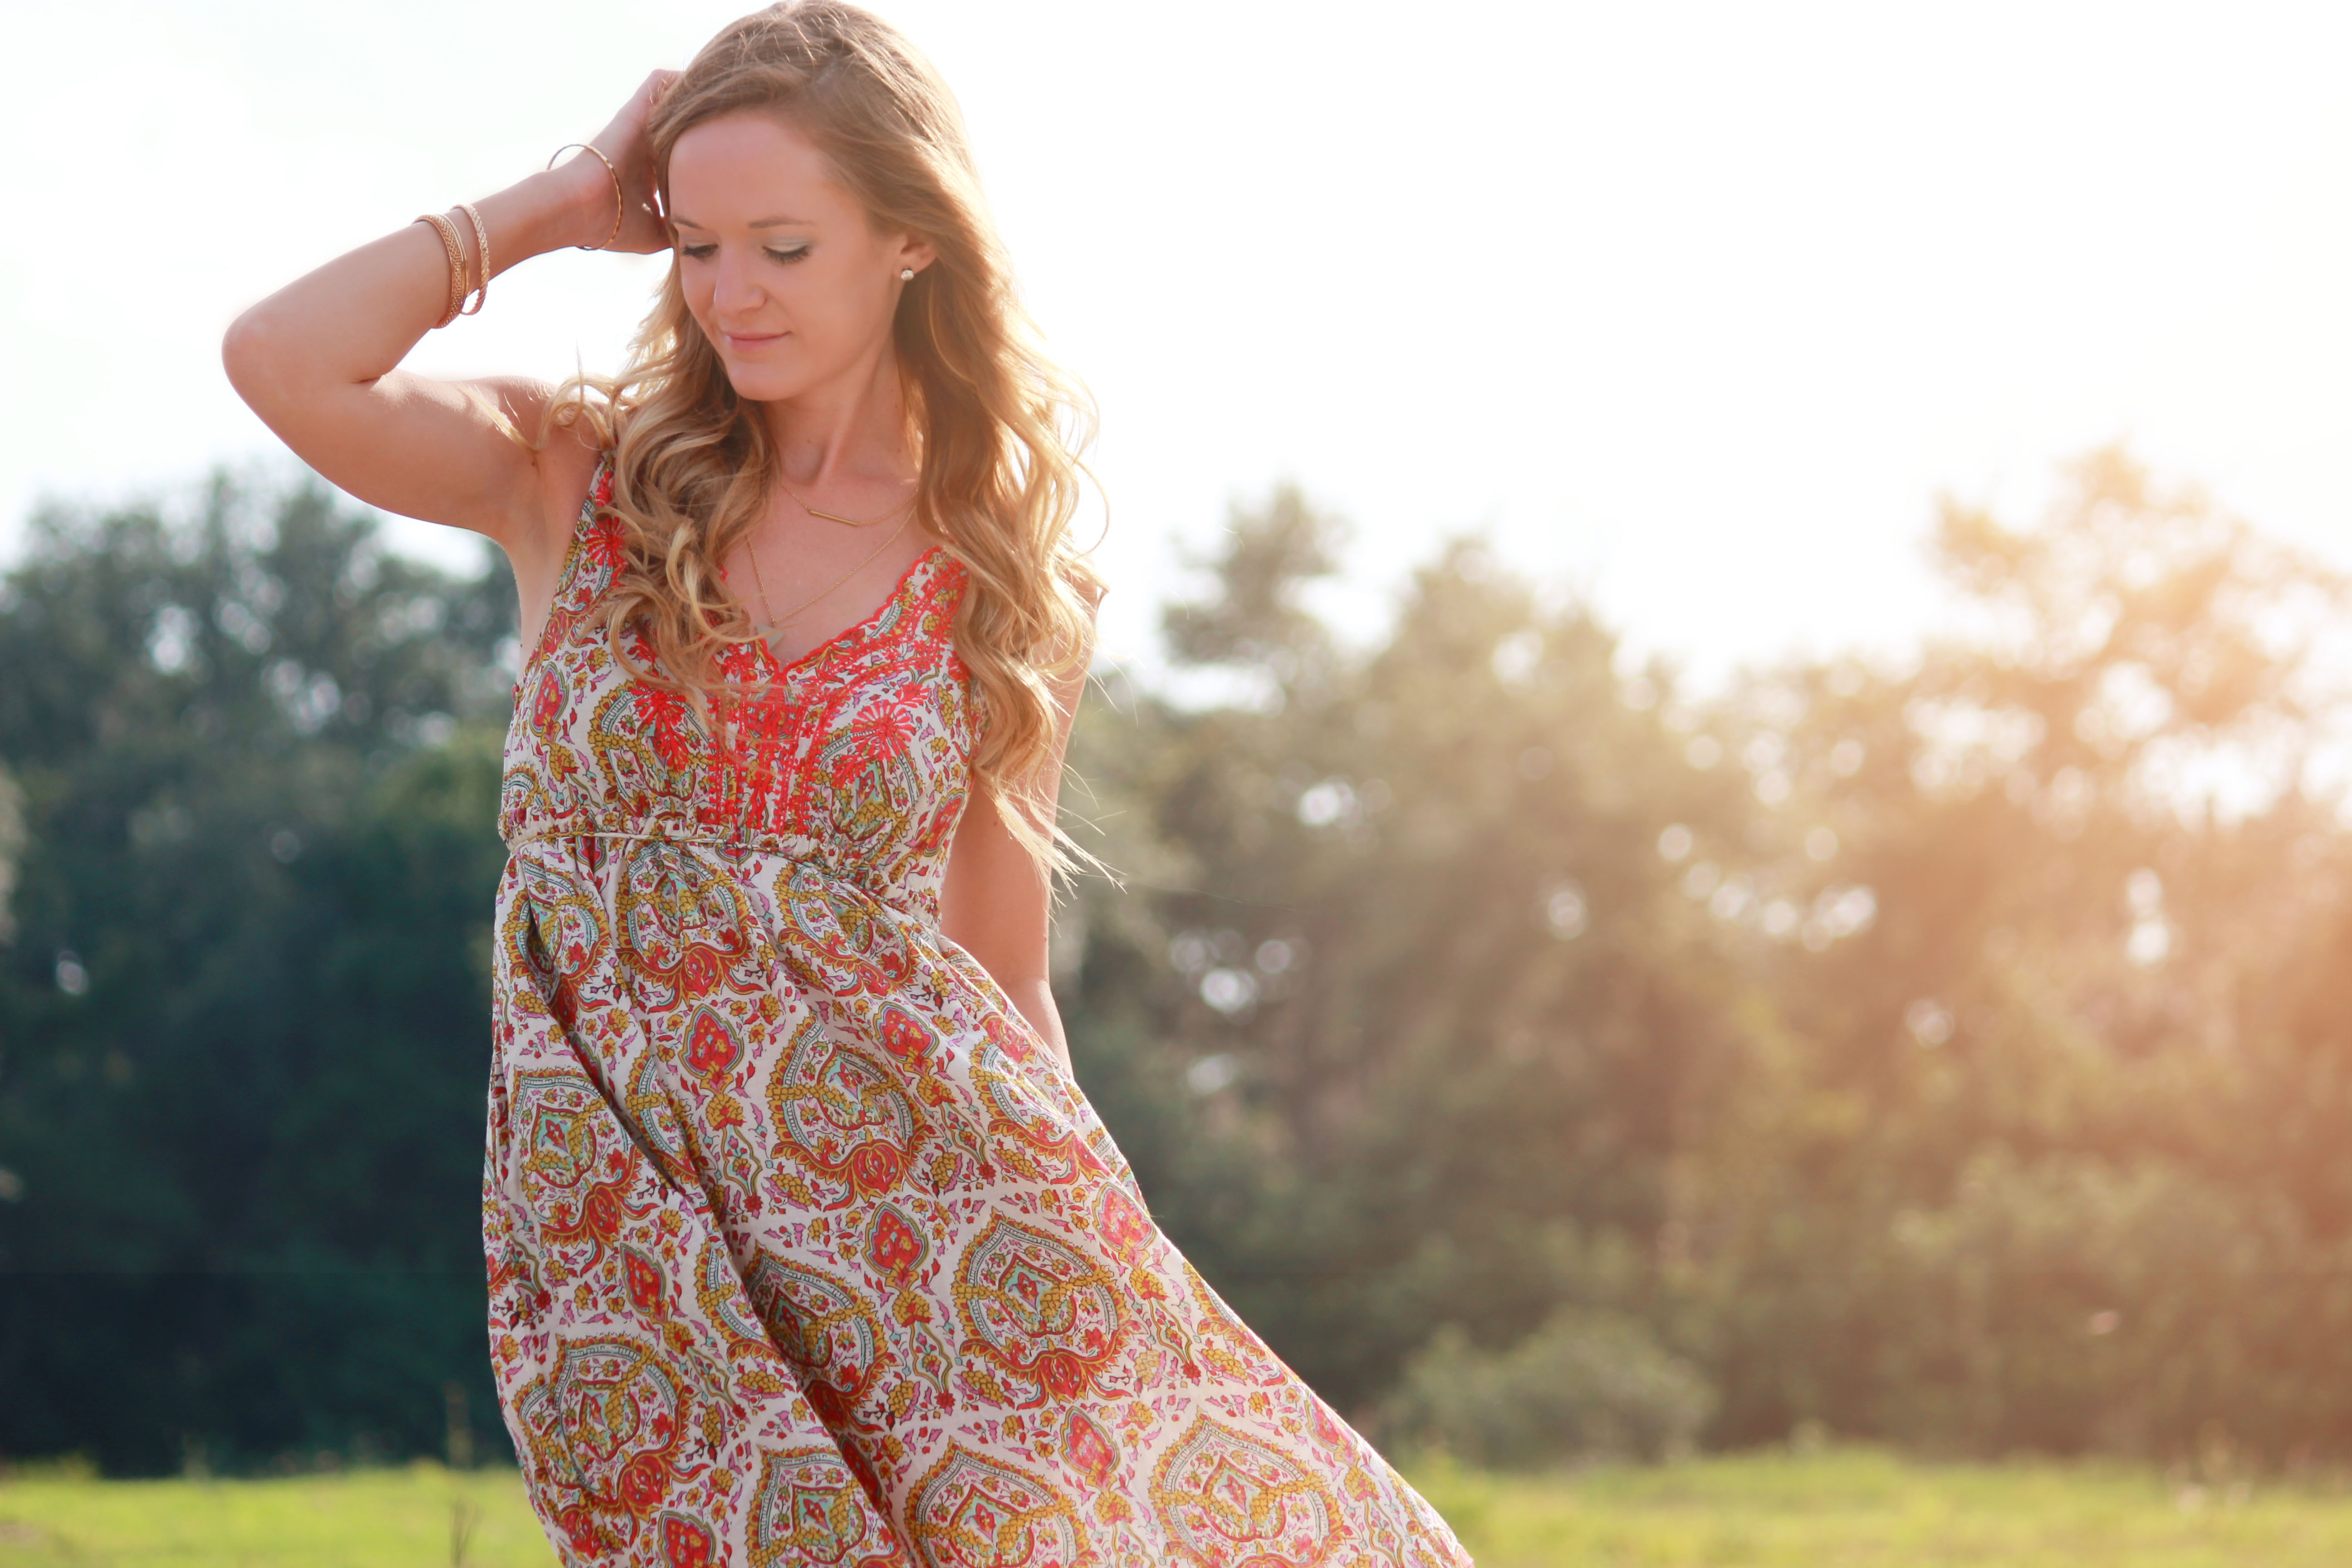 eshakti dress, patterned maxi dress, embroidered maxi, boho chic outfit, gianni bini sandals, summer outfit, casual summer outfit